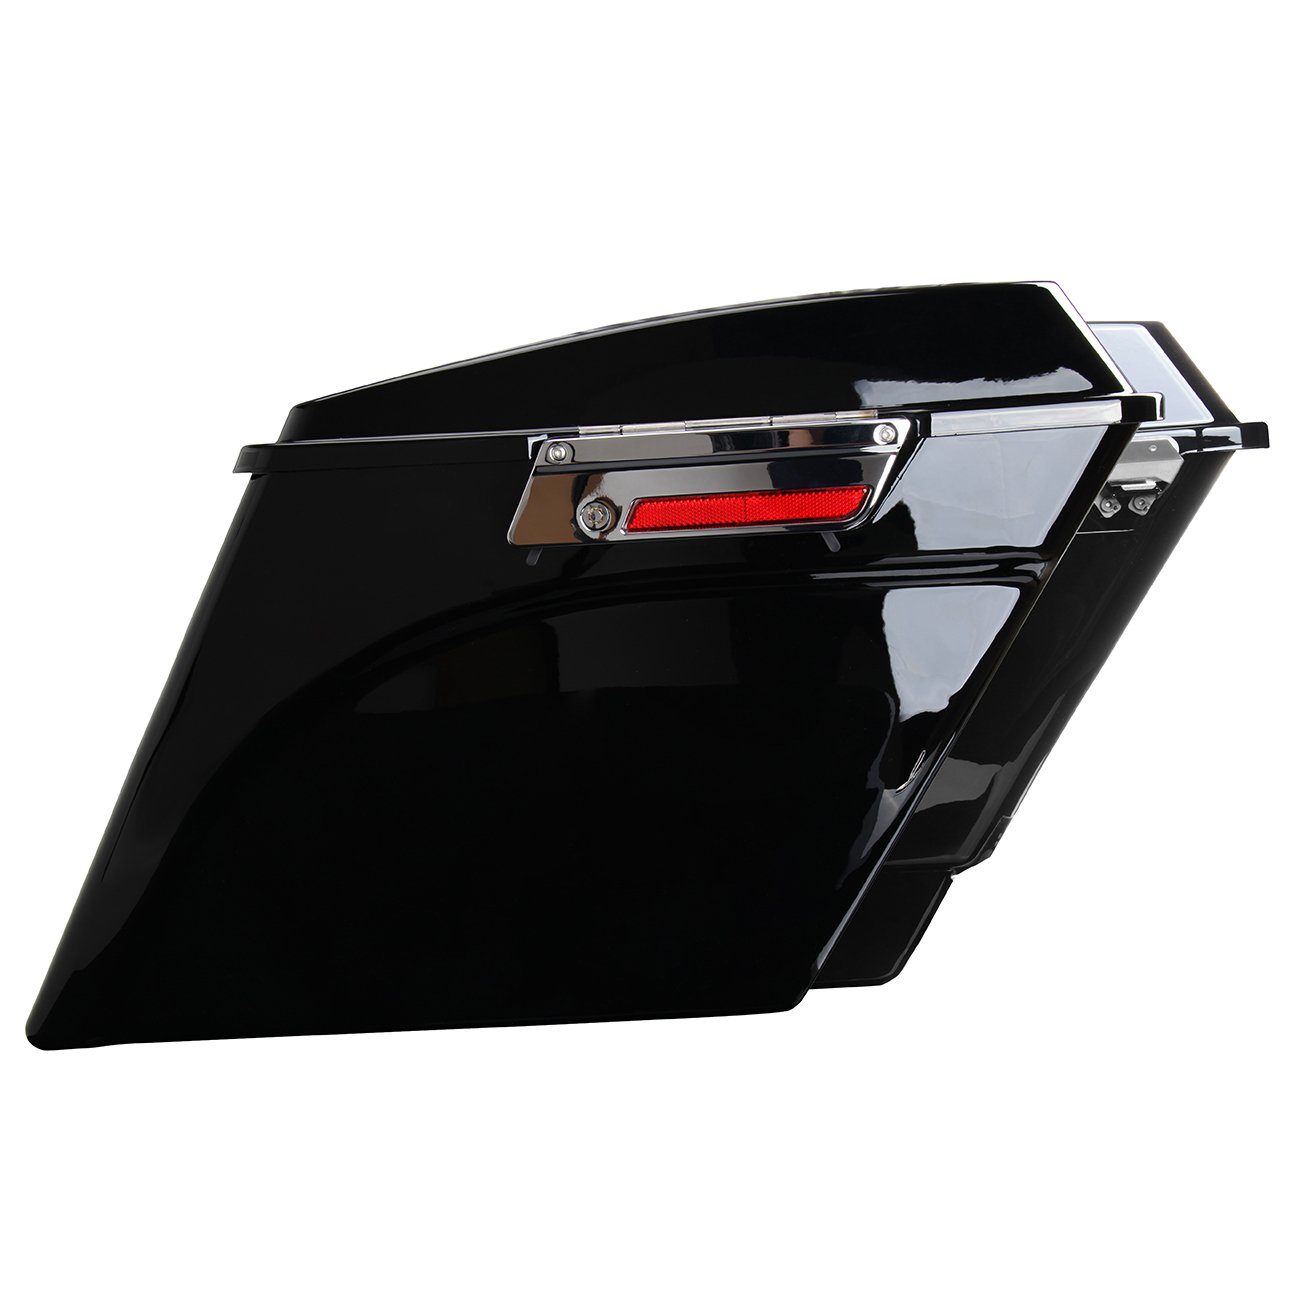 Ambienceo Stretched Extended Saddlebags Painted for 1993-2013 Harley Touring Electra Street Road Glide 1994 1995 1996 1997 1998 1999 2000 2001 2002 2003 004 2005 2006 2007 2008 2009 2010 2011 2012 13